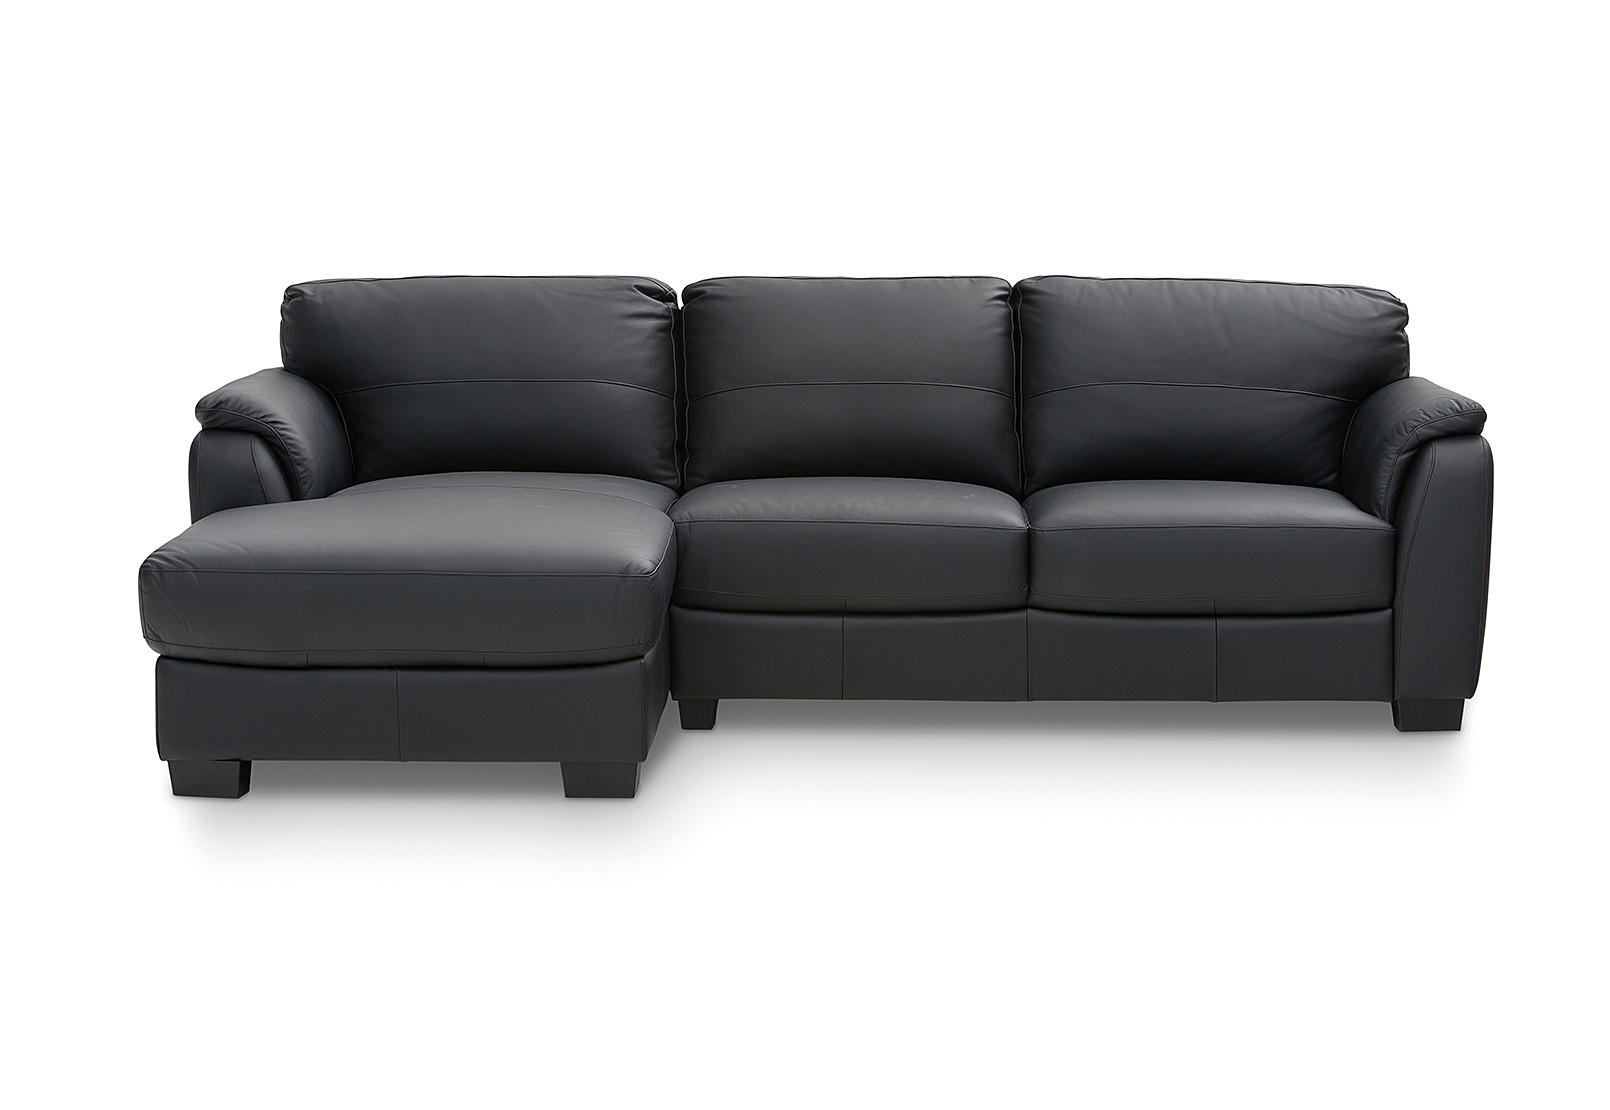 Marissa Leather 3 Seater Chaise | Amart Furniture Regarding Marissa Sofa Chairs (Image 12 of 25)